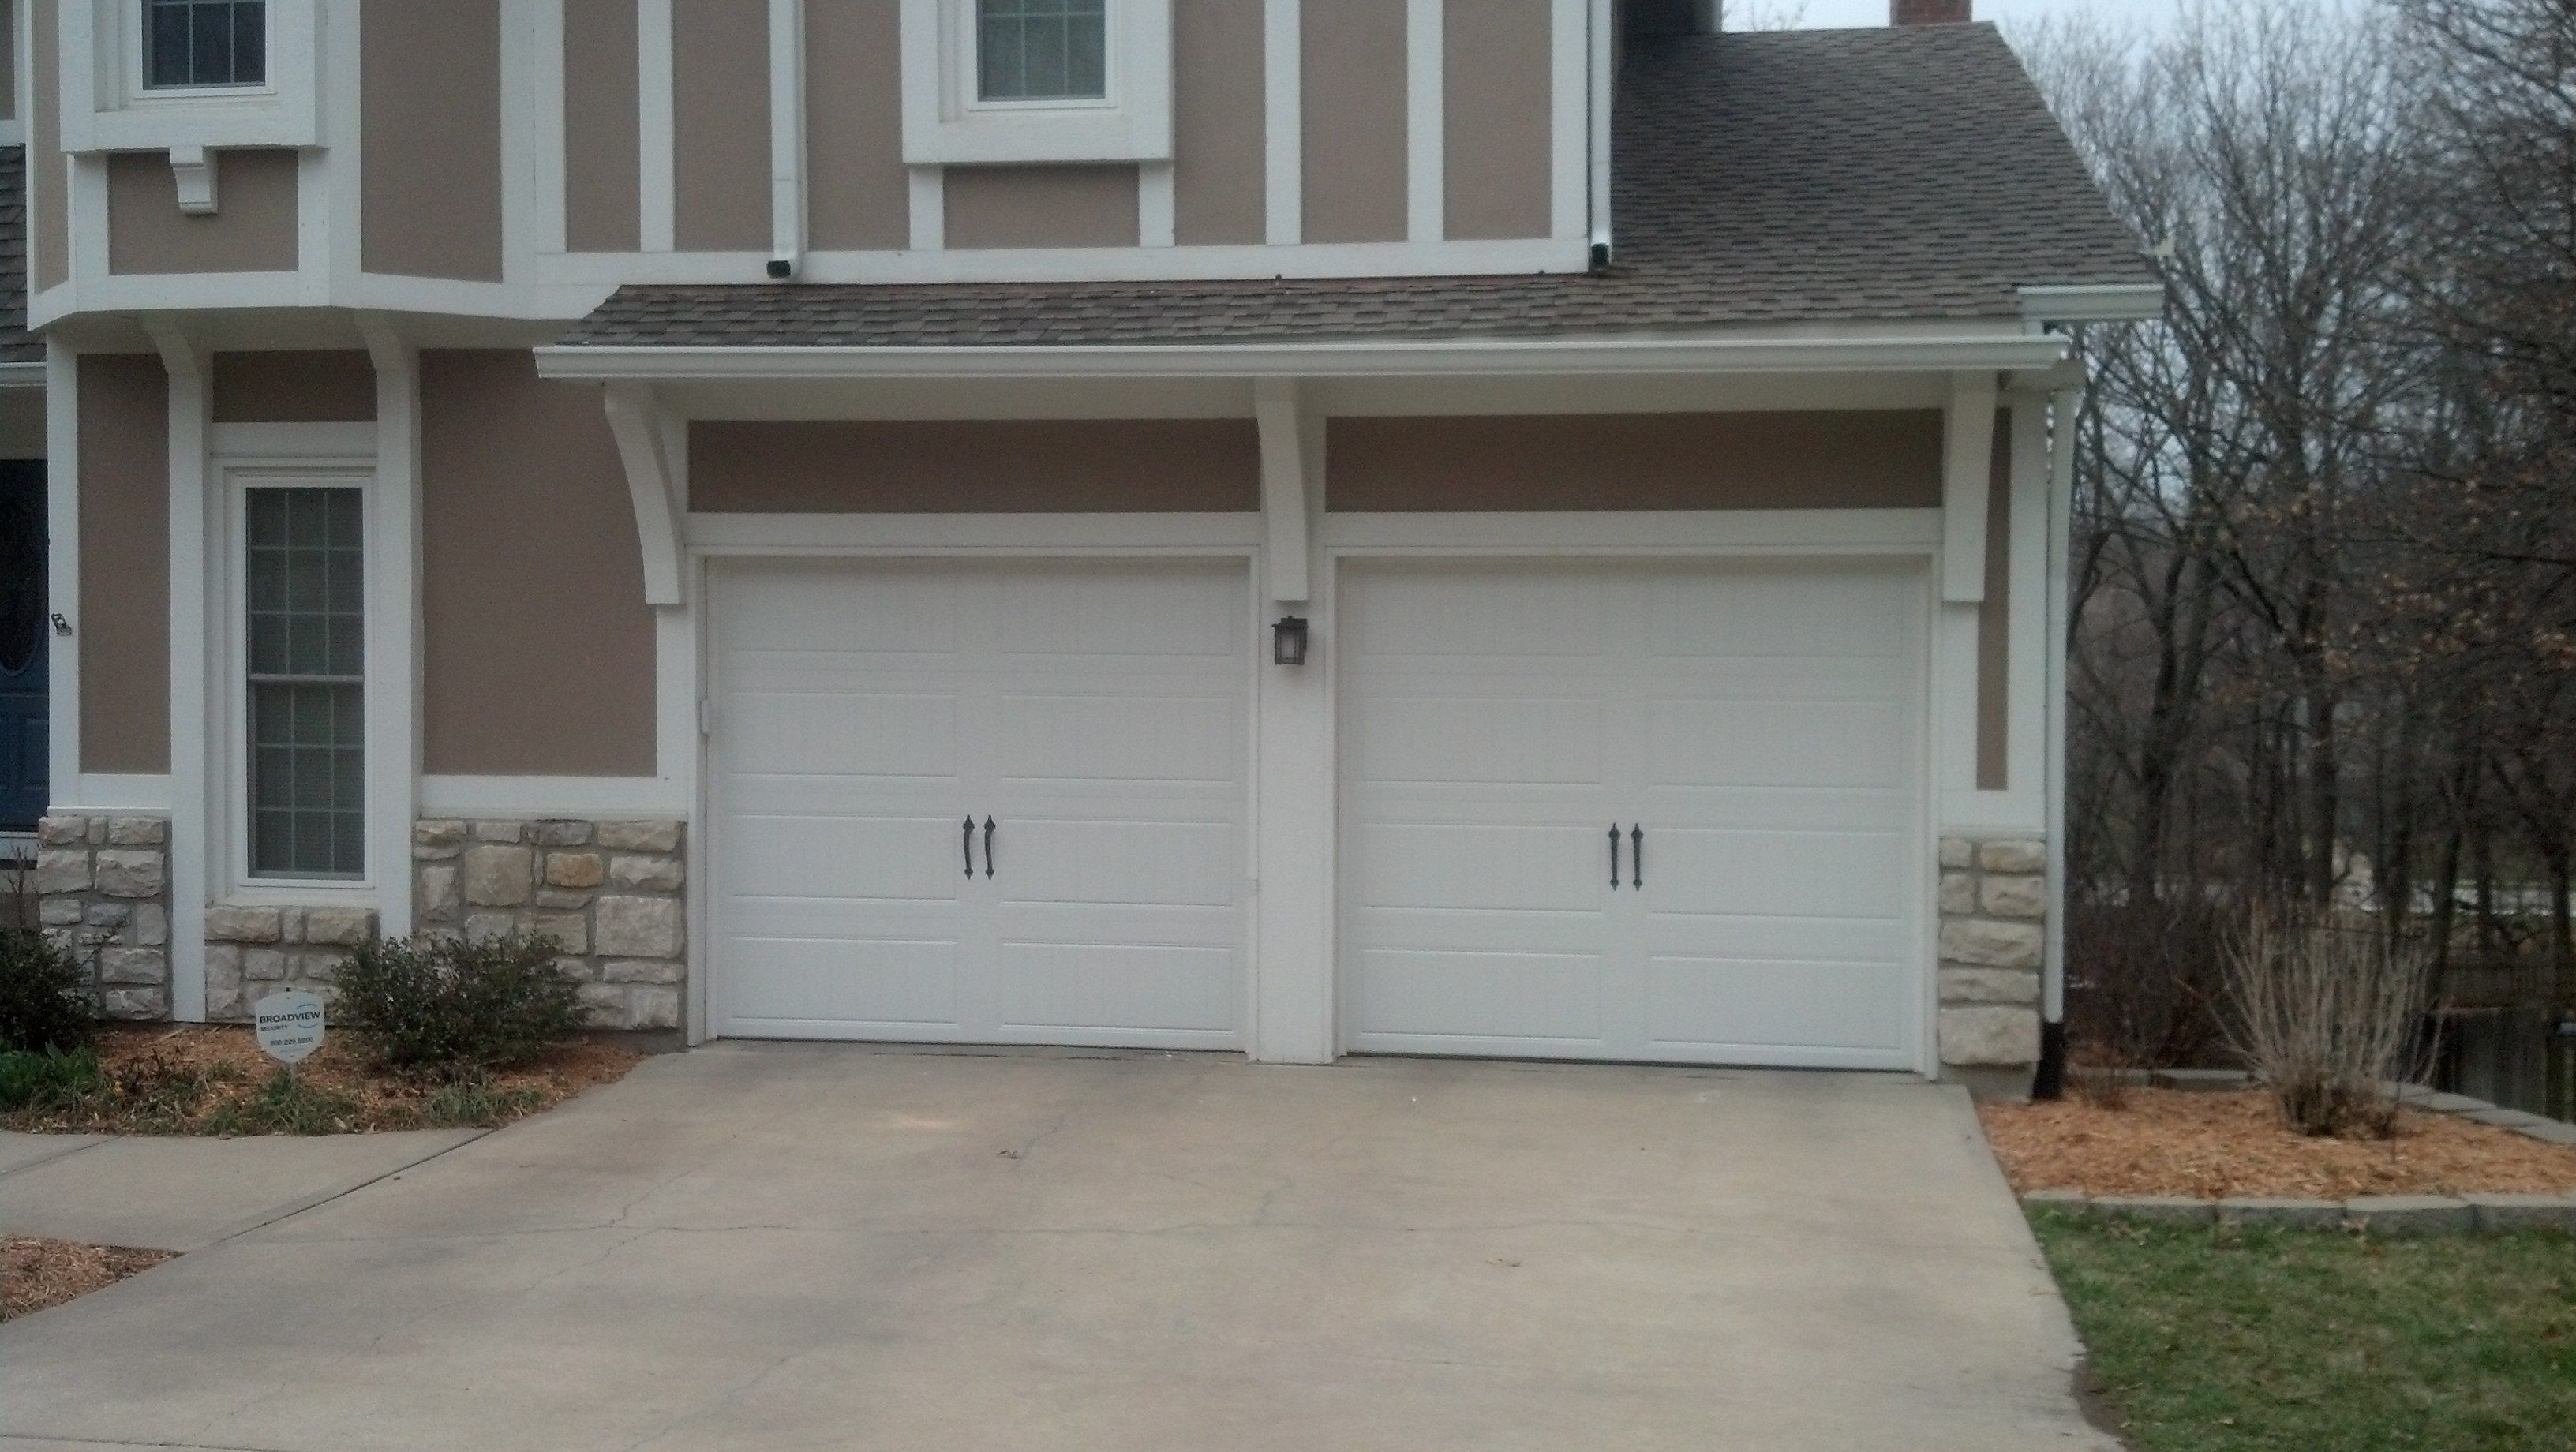 Clopay gallery collection steel insulated garage doors for Clopay steel garage doors